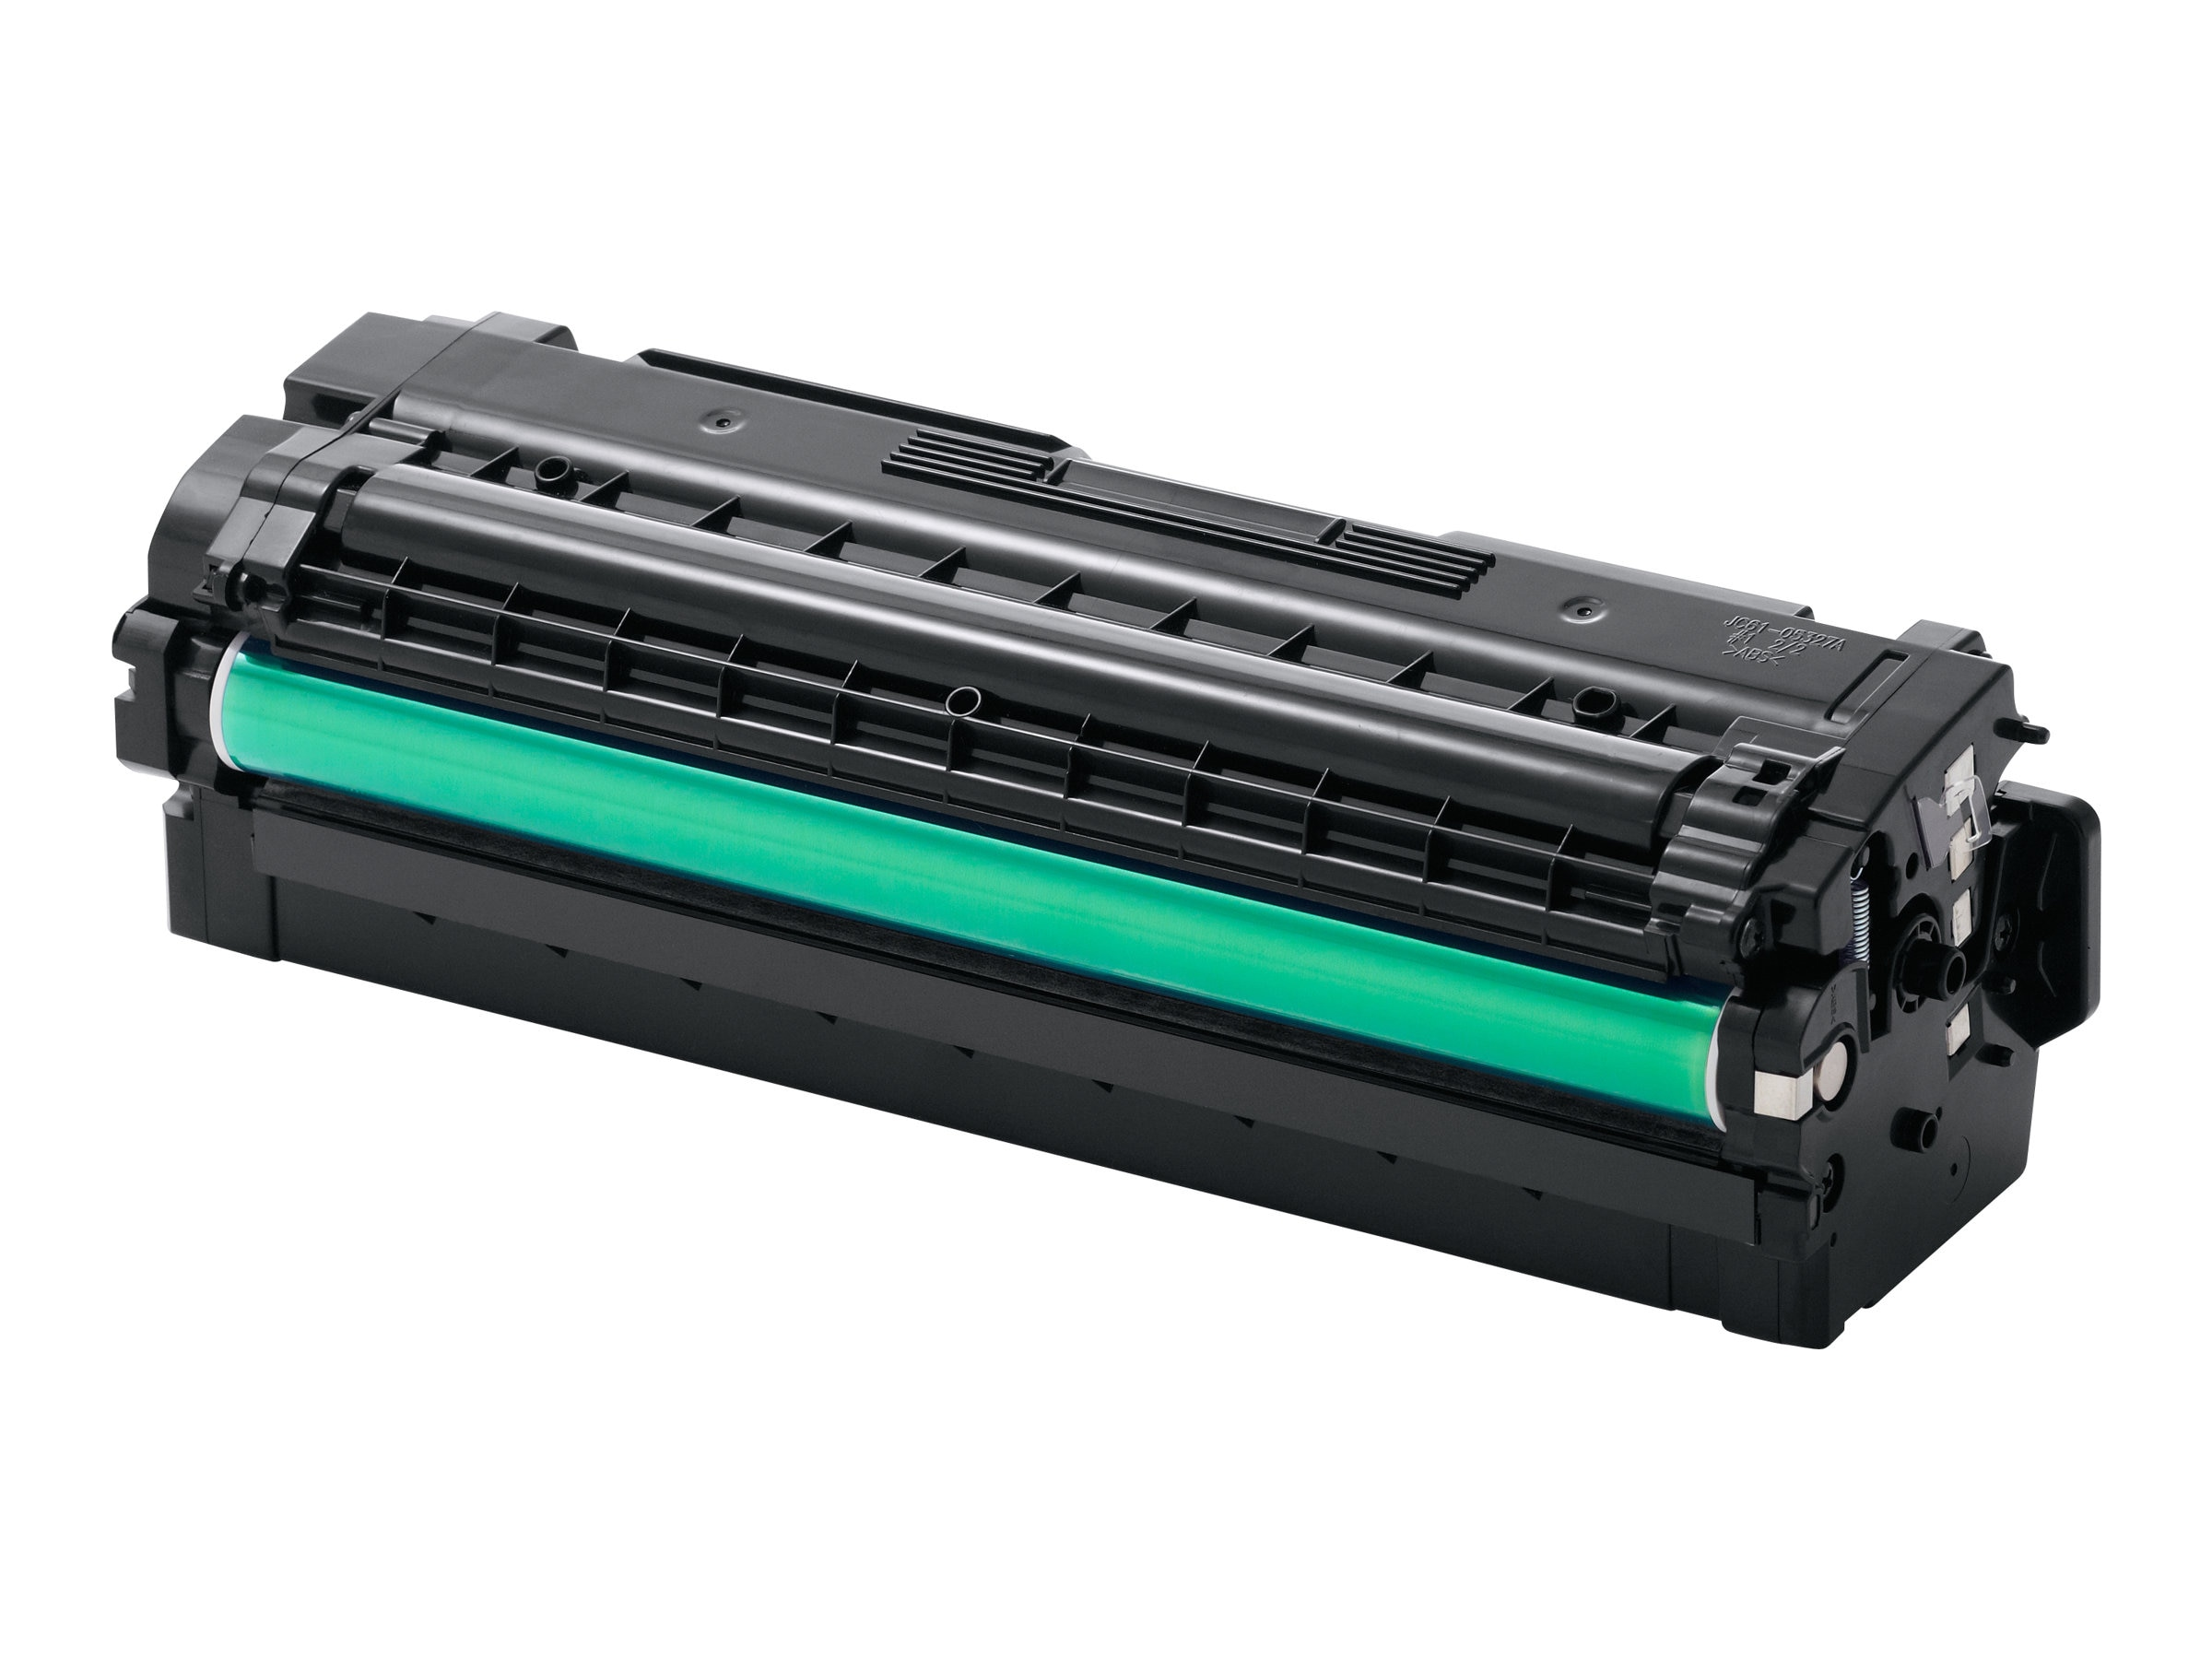 Samsung Magenta High Yield Toner Cartridge for CLX-6260FD & CLX-6260FW Color MFPs & CLP-680ND Color Printer, CLT-M506L, 14291531, Toner and Imaging Components